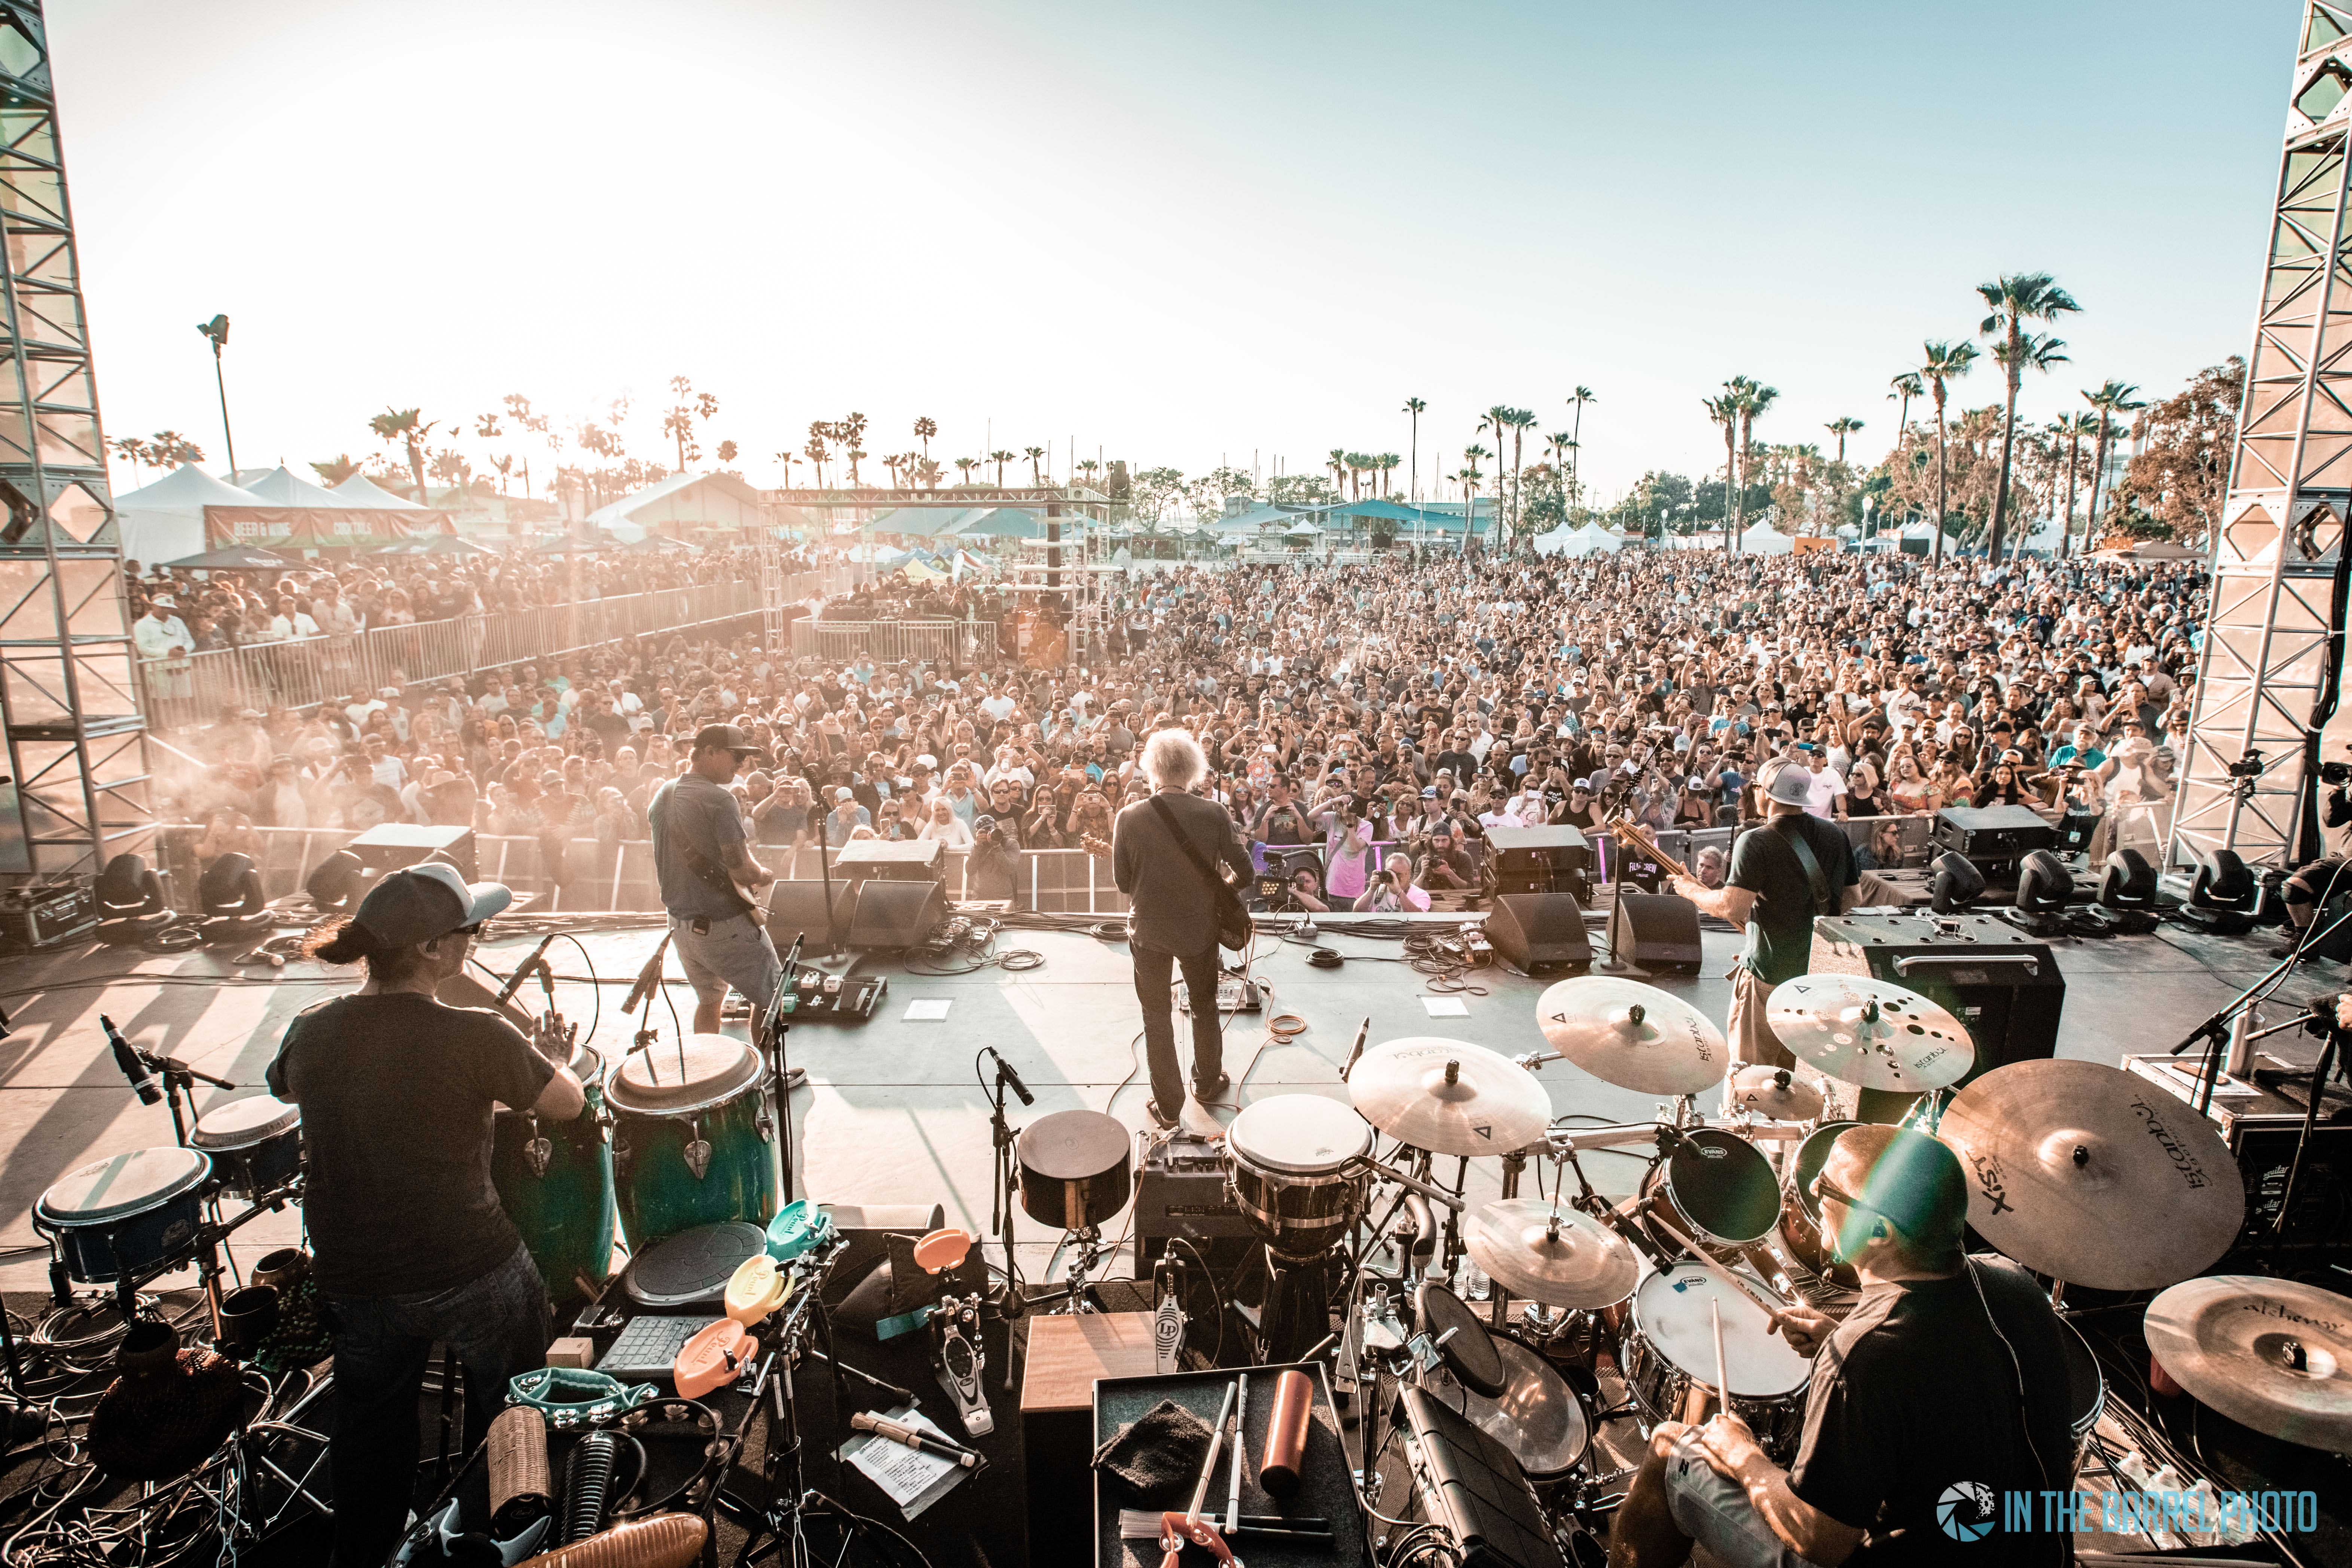 Bobby Joins Slightly Stoopid @ BeachLife + 2019 Summer Tour Dates